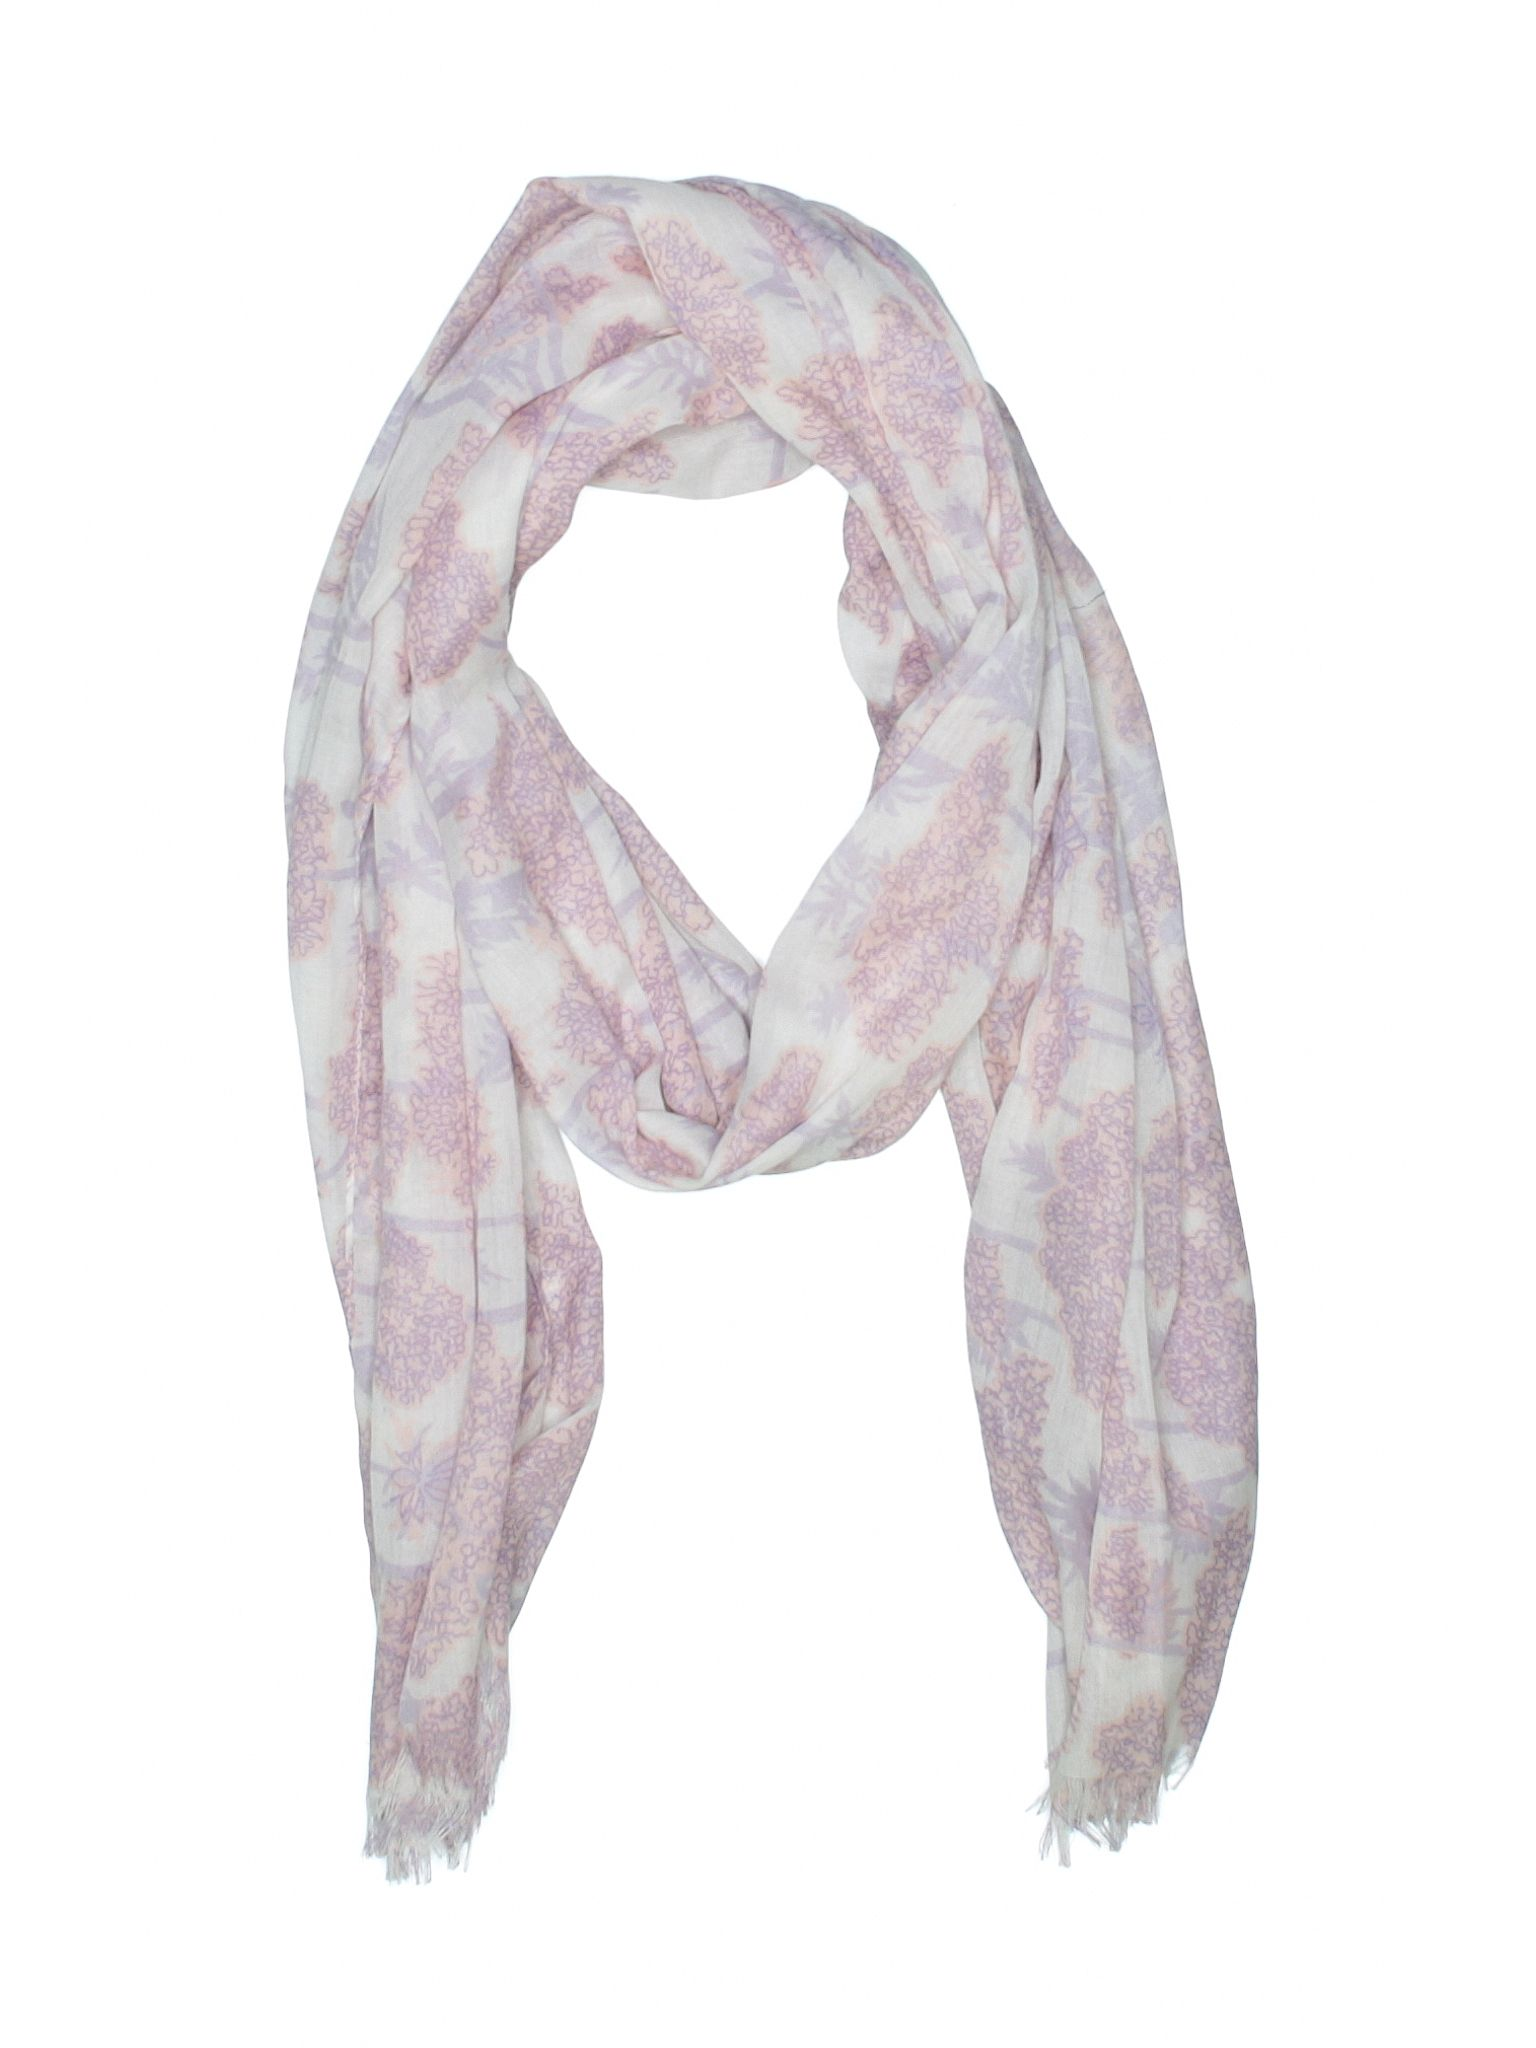 Unbranded Accessories Scarf: Size 0.00 Light Purple Womenu0027s Accessories    $0.99